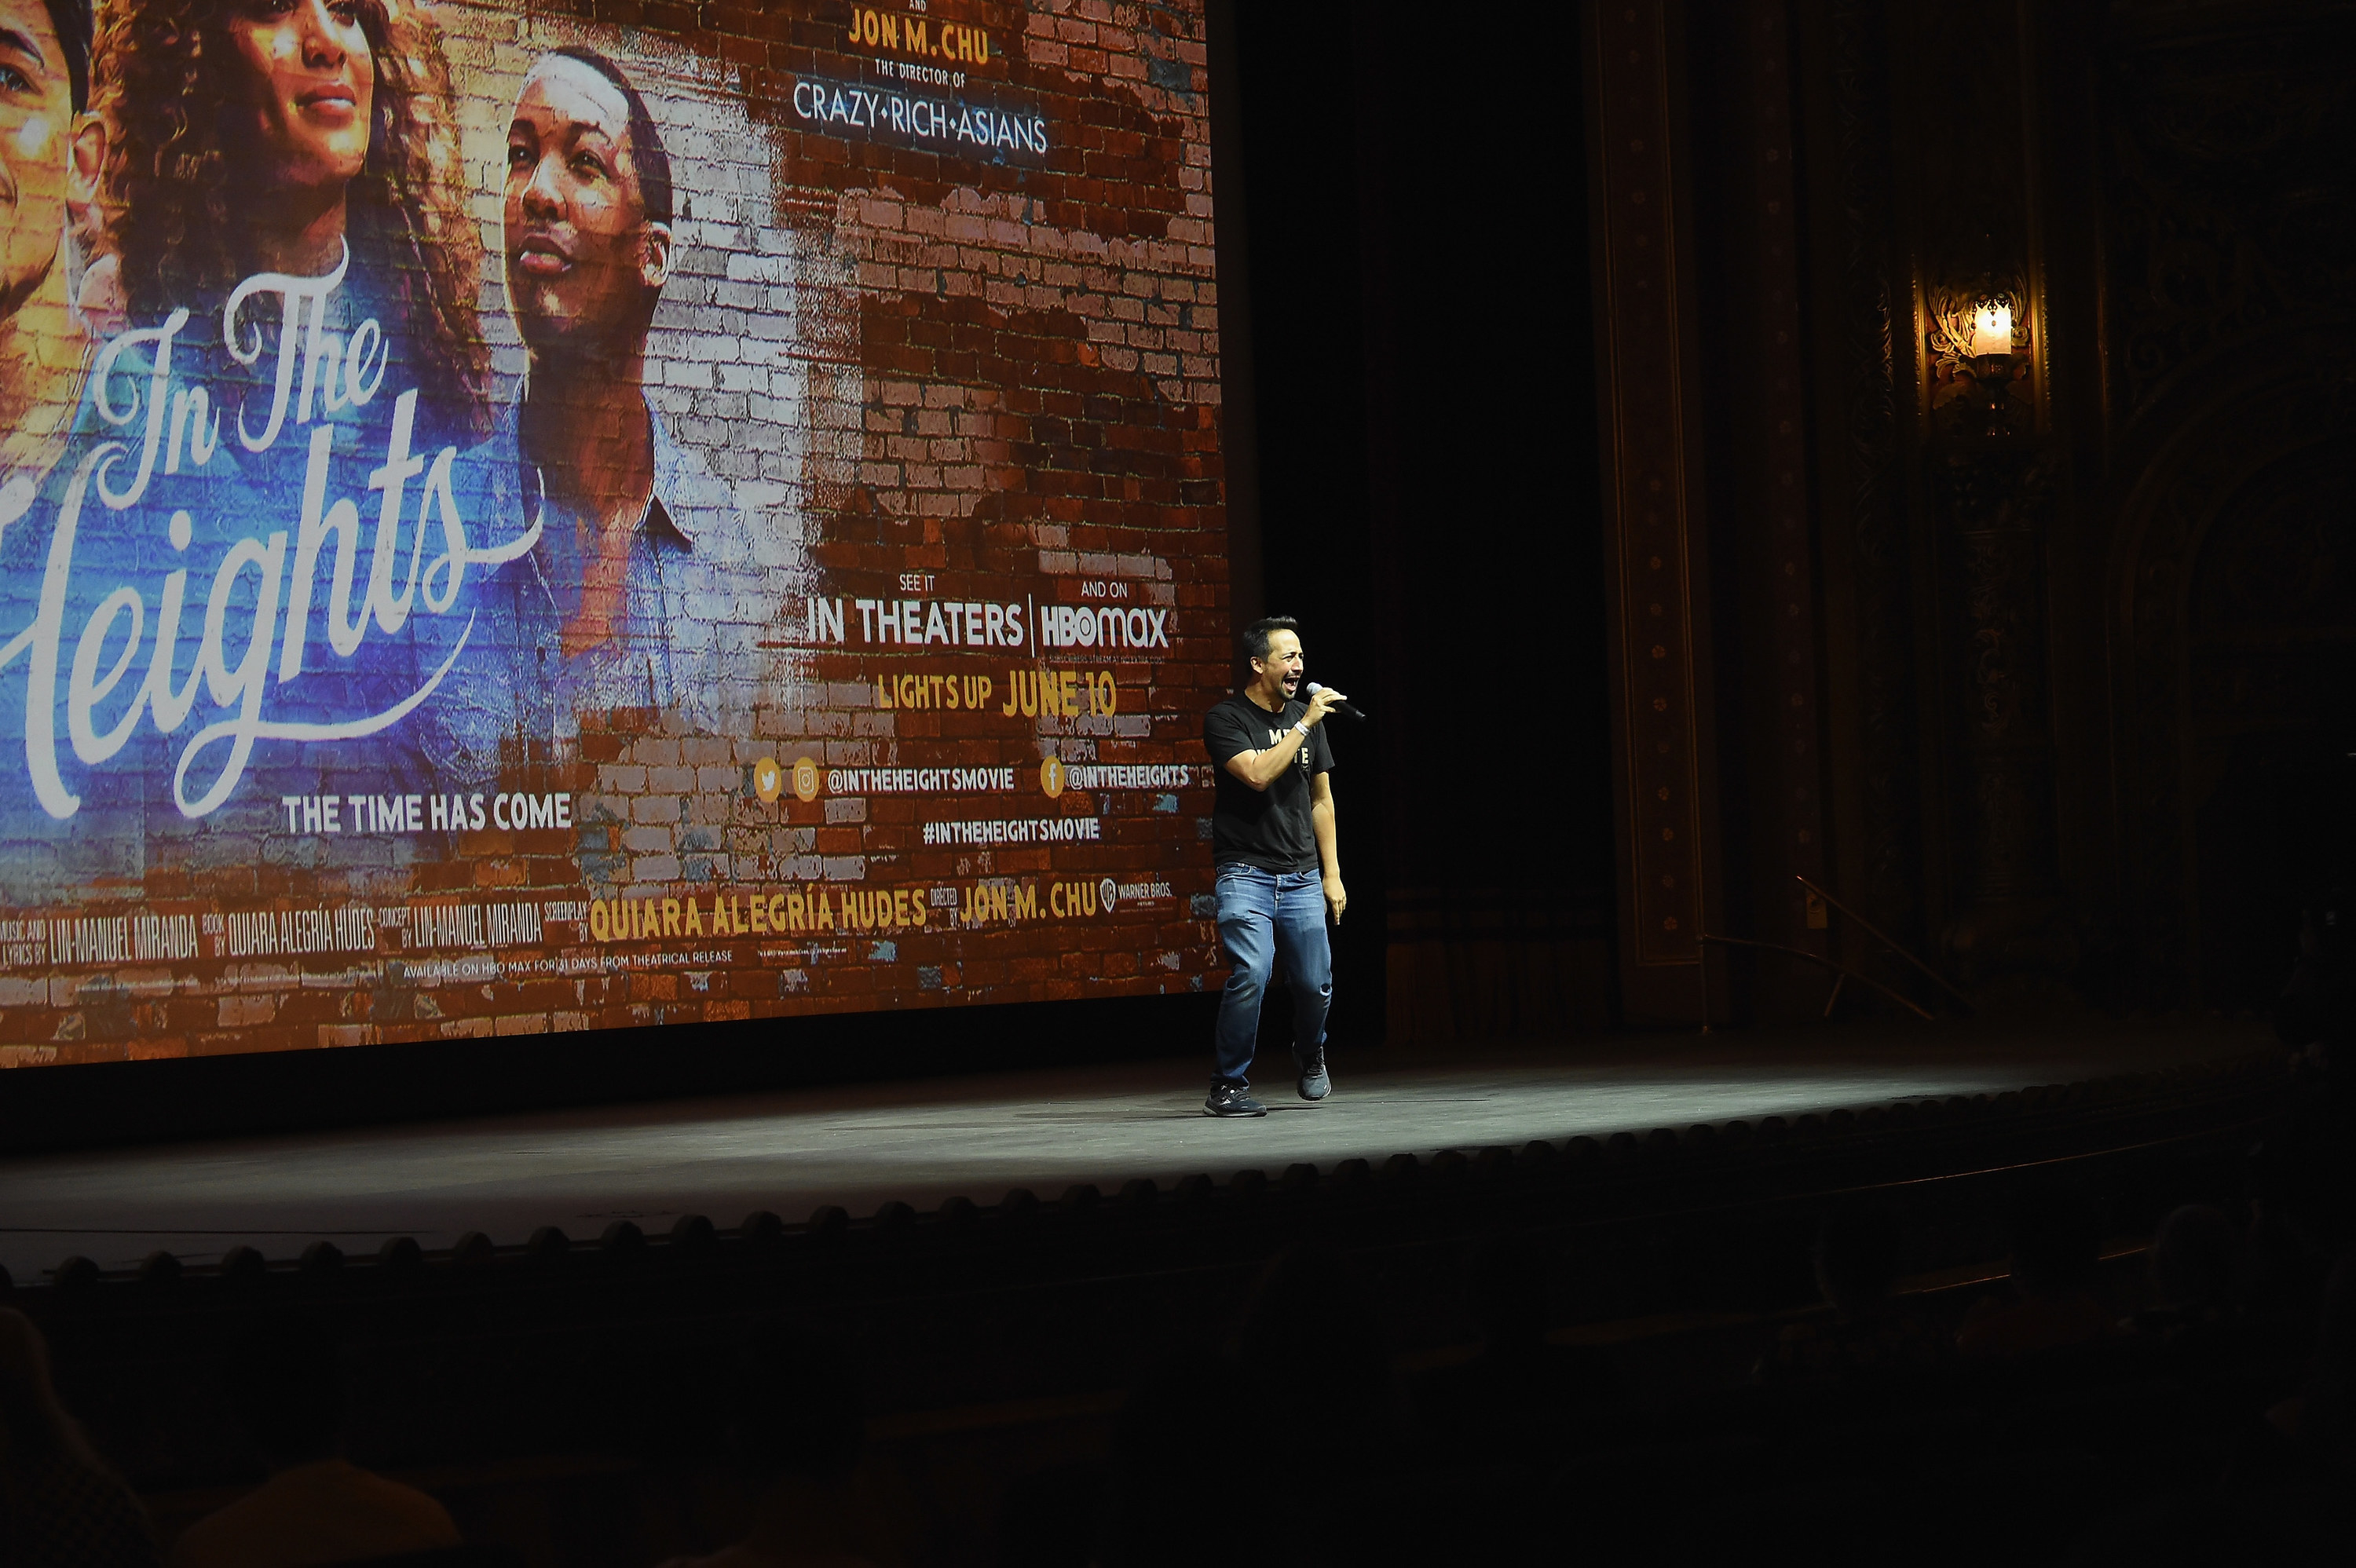 """Actor/playwright/composer Lin-Manuel Miranda speaks onstage before a free screening of """"In the Heights"""" at United Palace Theater on June 10, 2021 in New York City"""